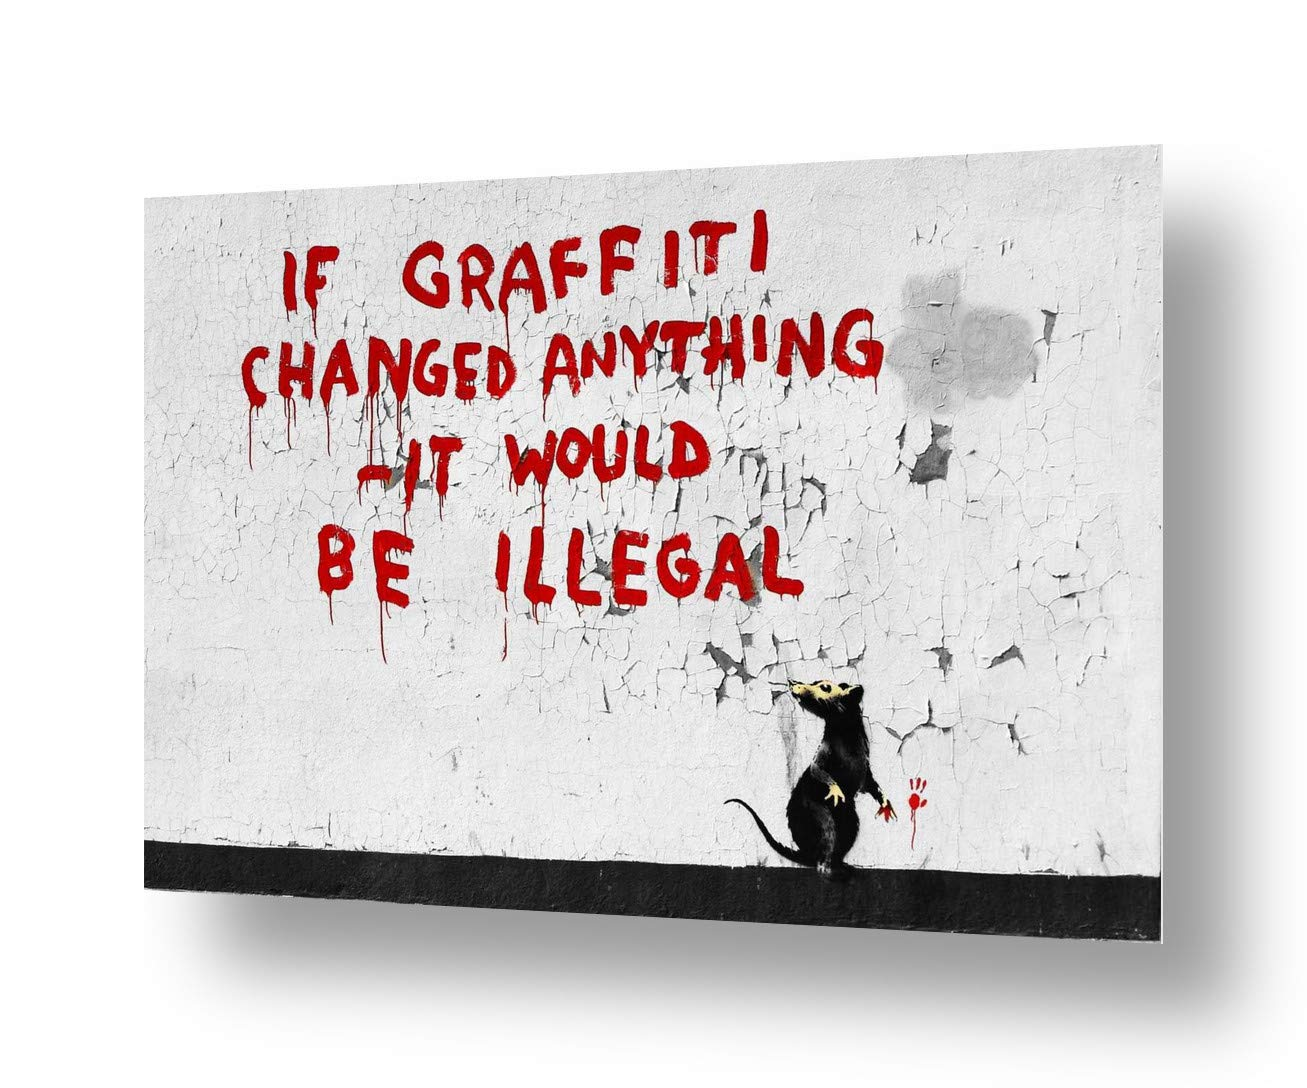 """Alonline Art - If Graffitti Changed Anything by Banksy   print on canvas   Ready to frame (synthetic, Rolled)   24""""x16"""" - 61x41cm   Wall art home decor for office or for bathroom   giclee picture"""